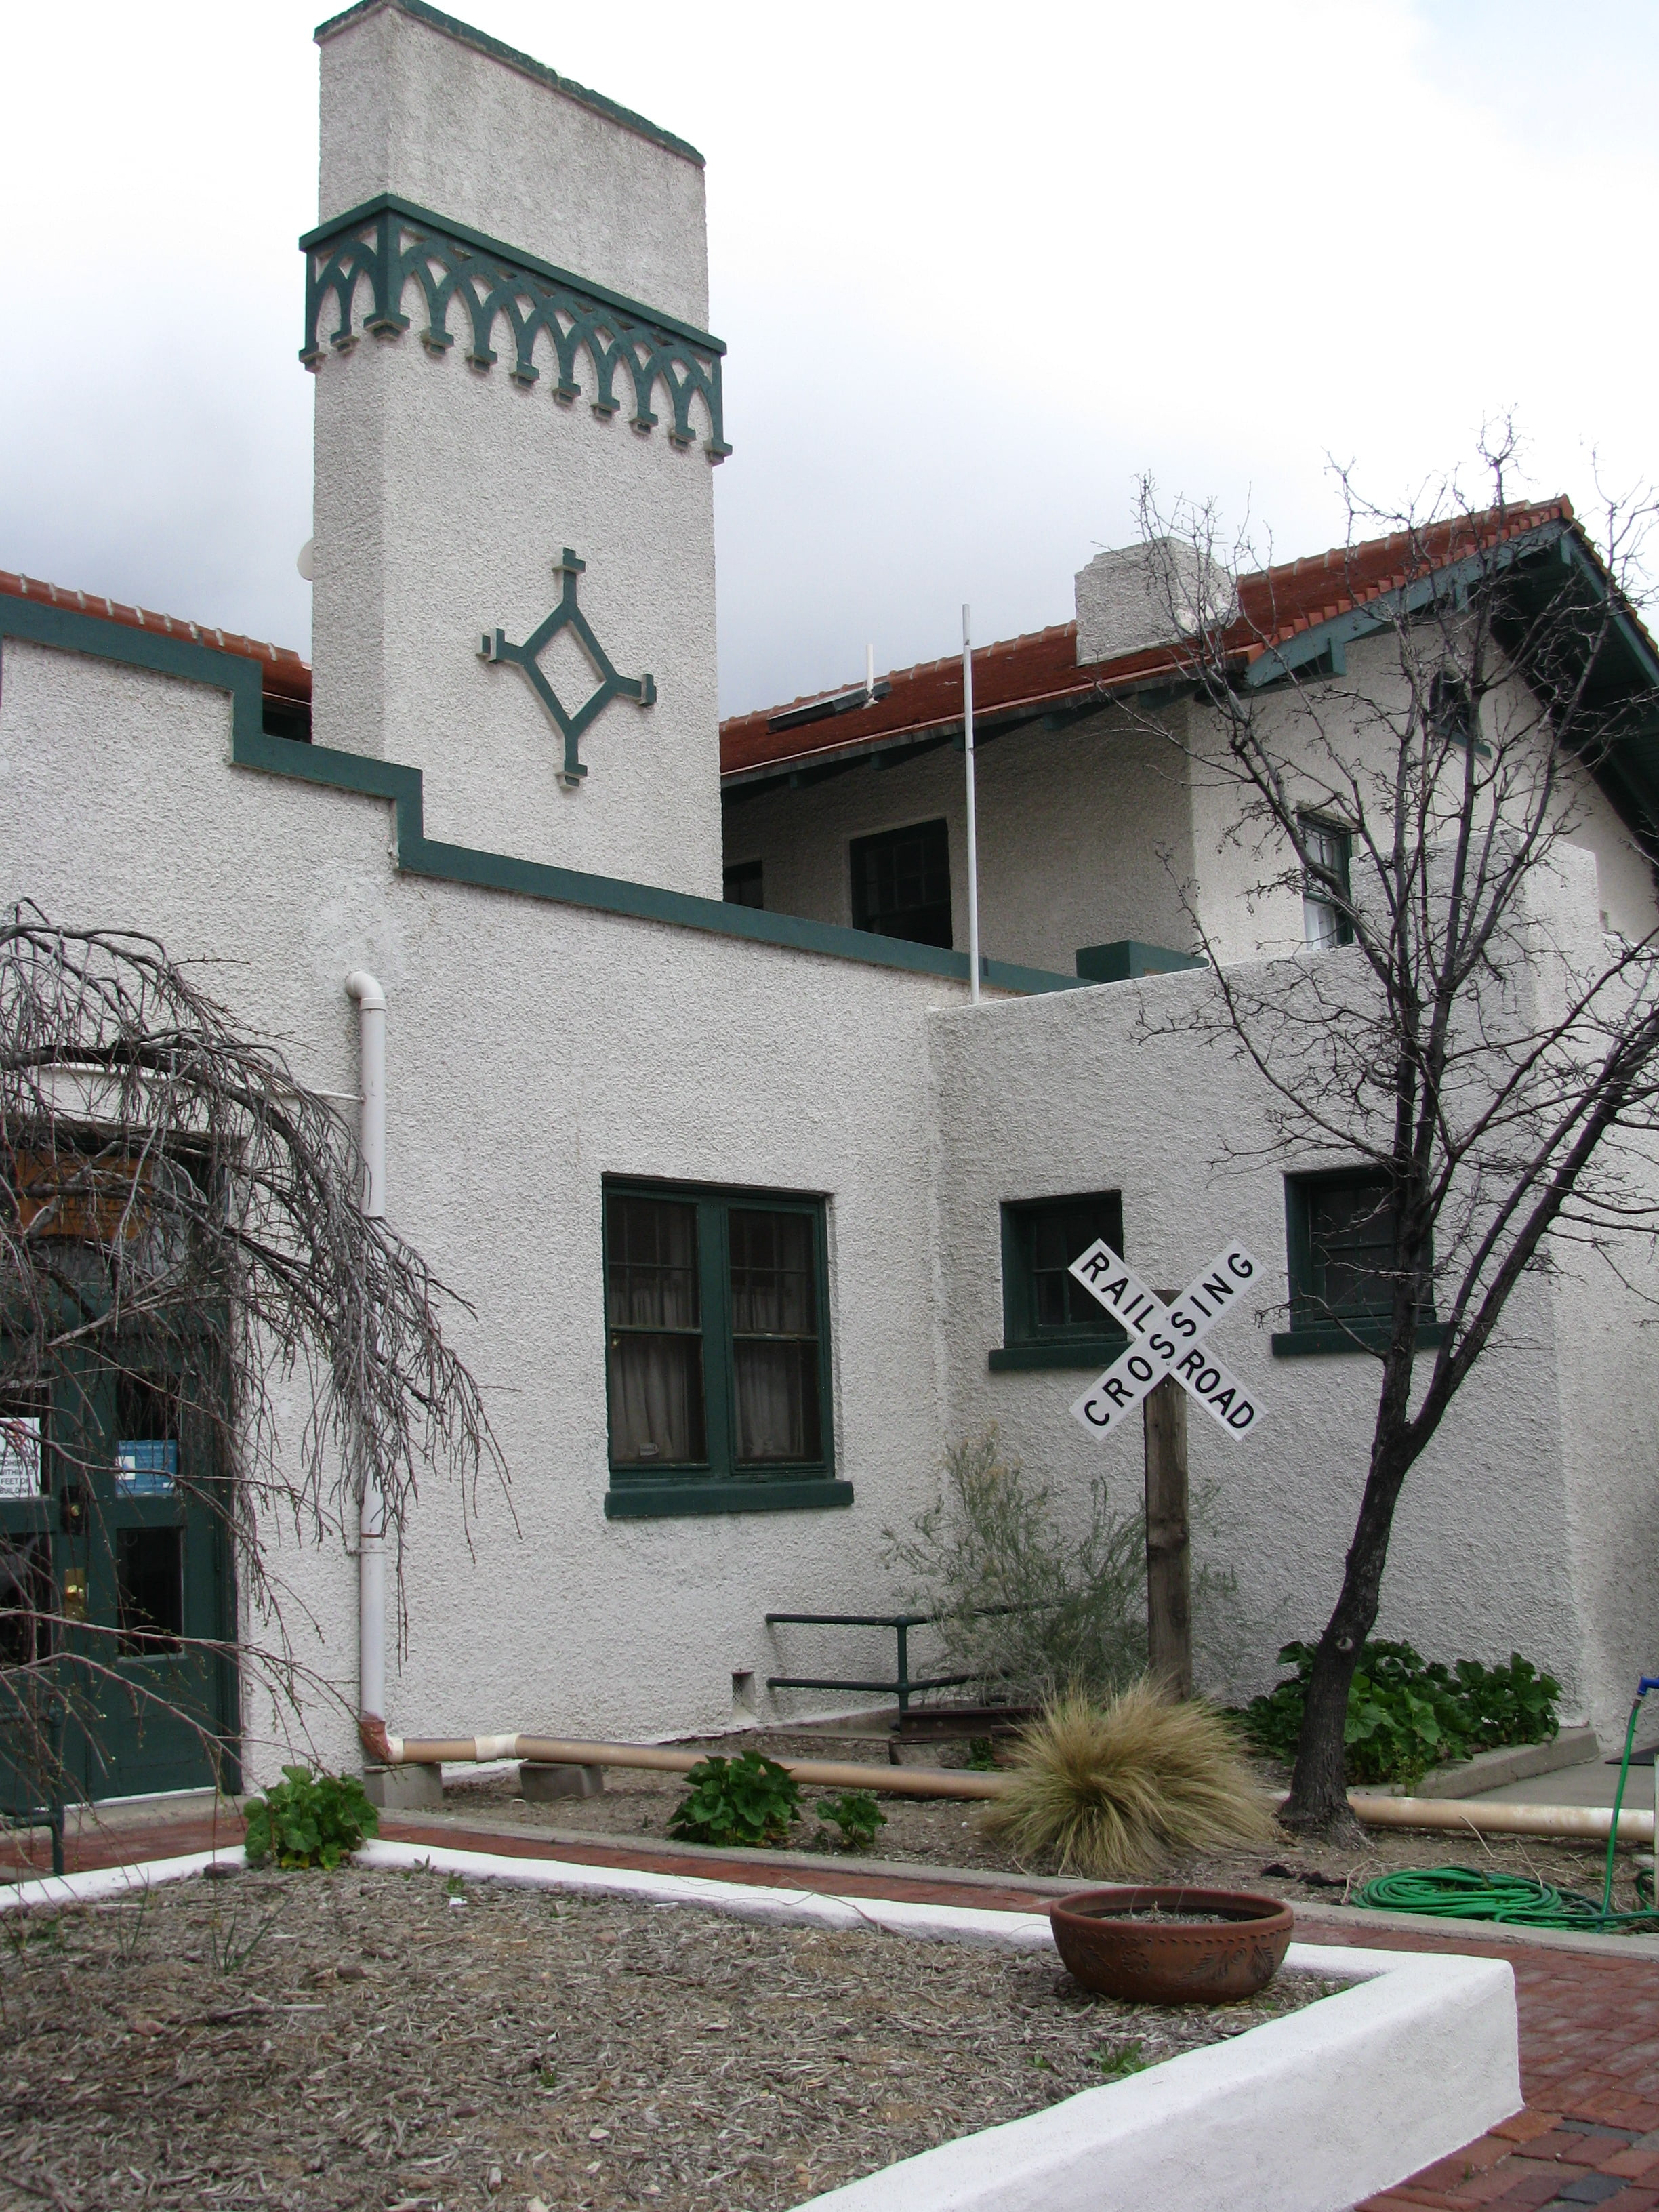 Close to Home: Harvey House in Belen is full of history